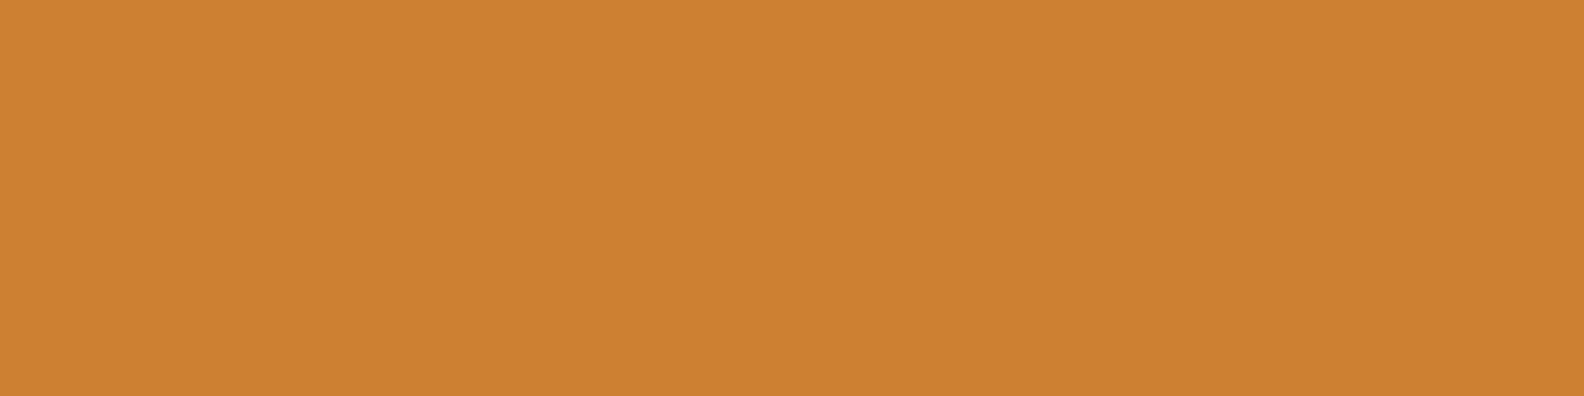 1584x396 Bronze Solid Color Background